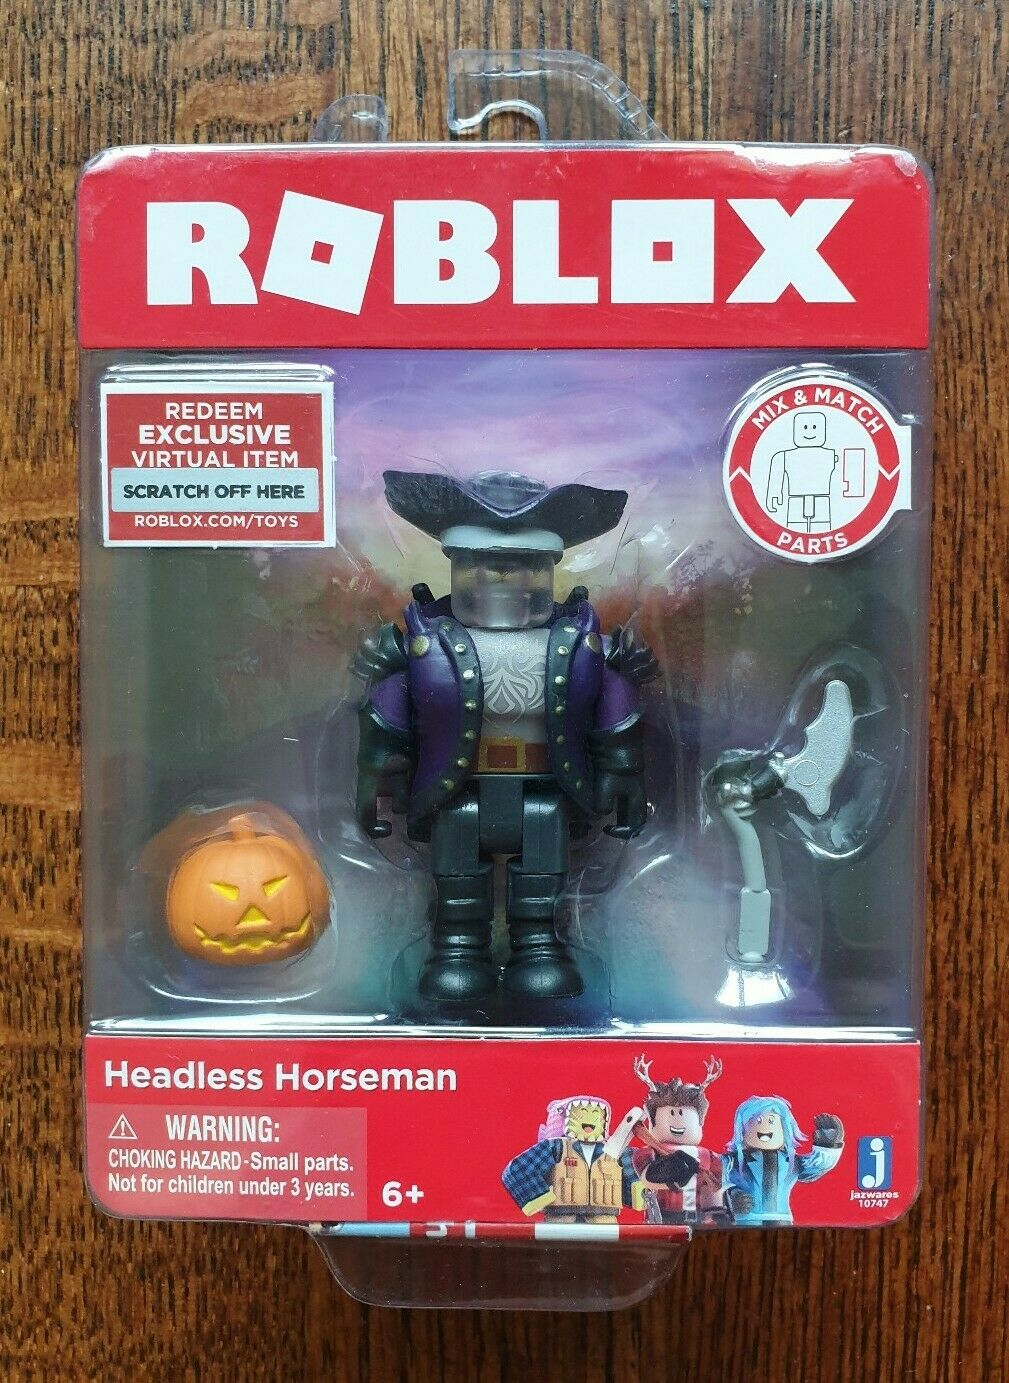 Roblox Headless Horseman Promo Codes